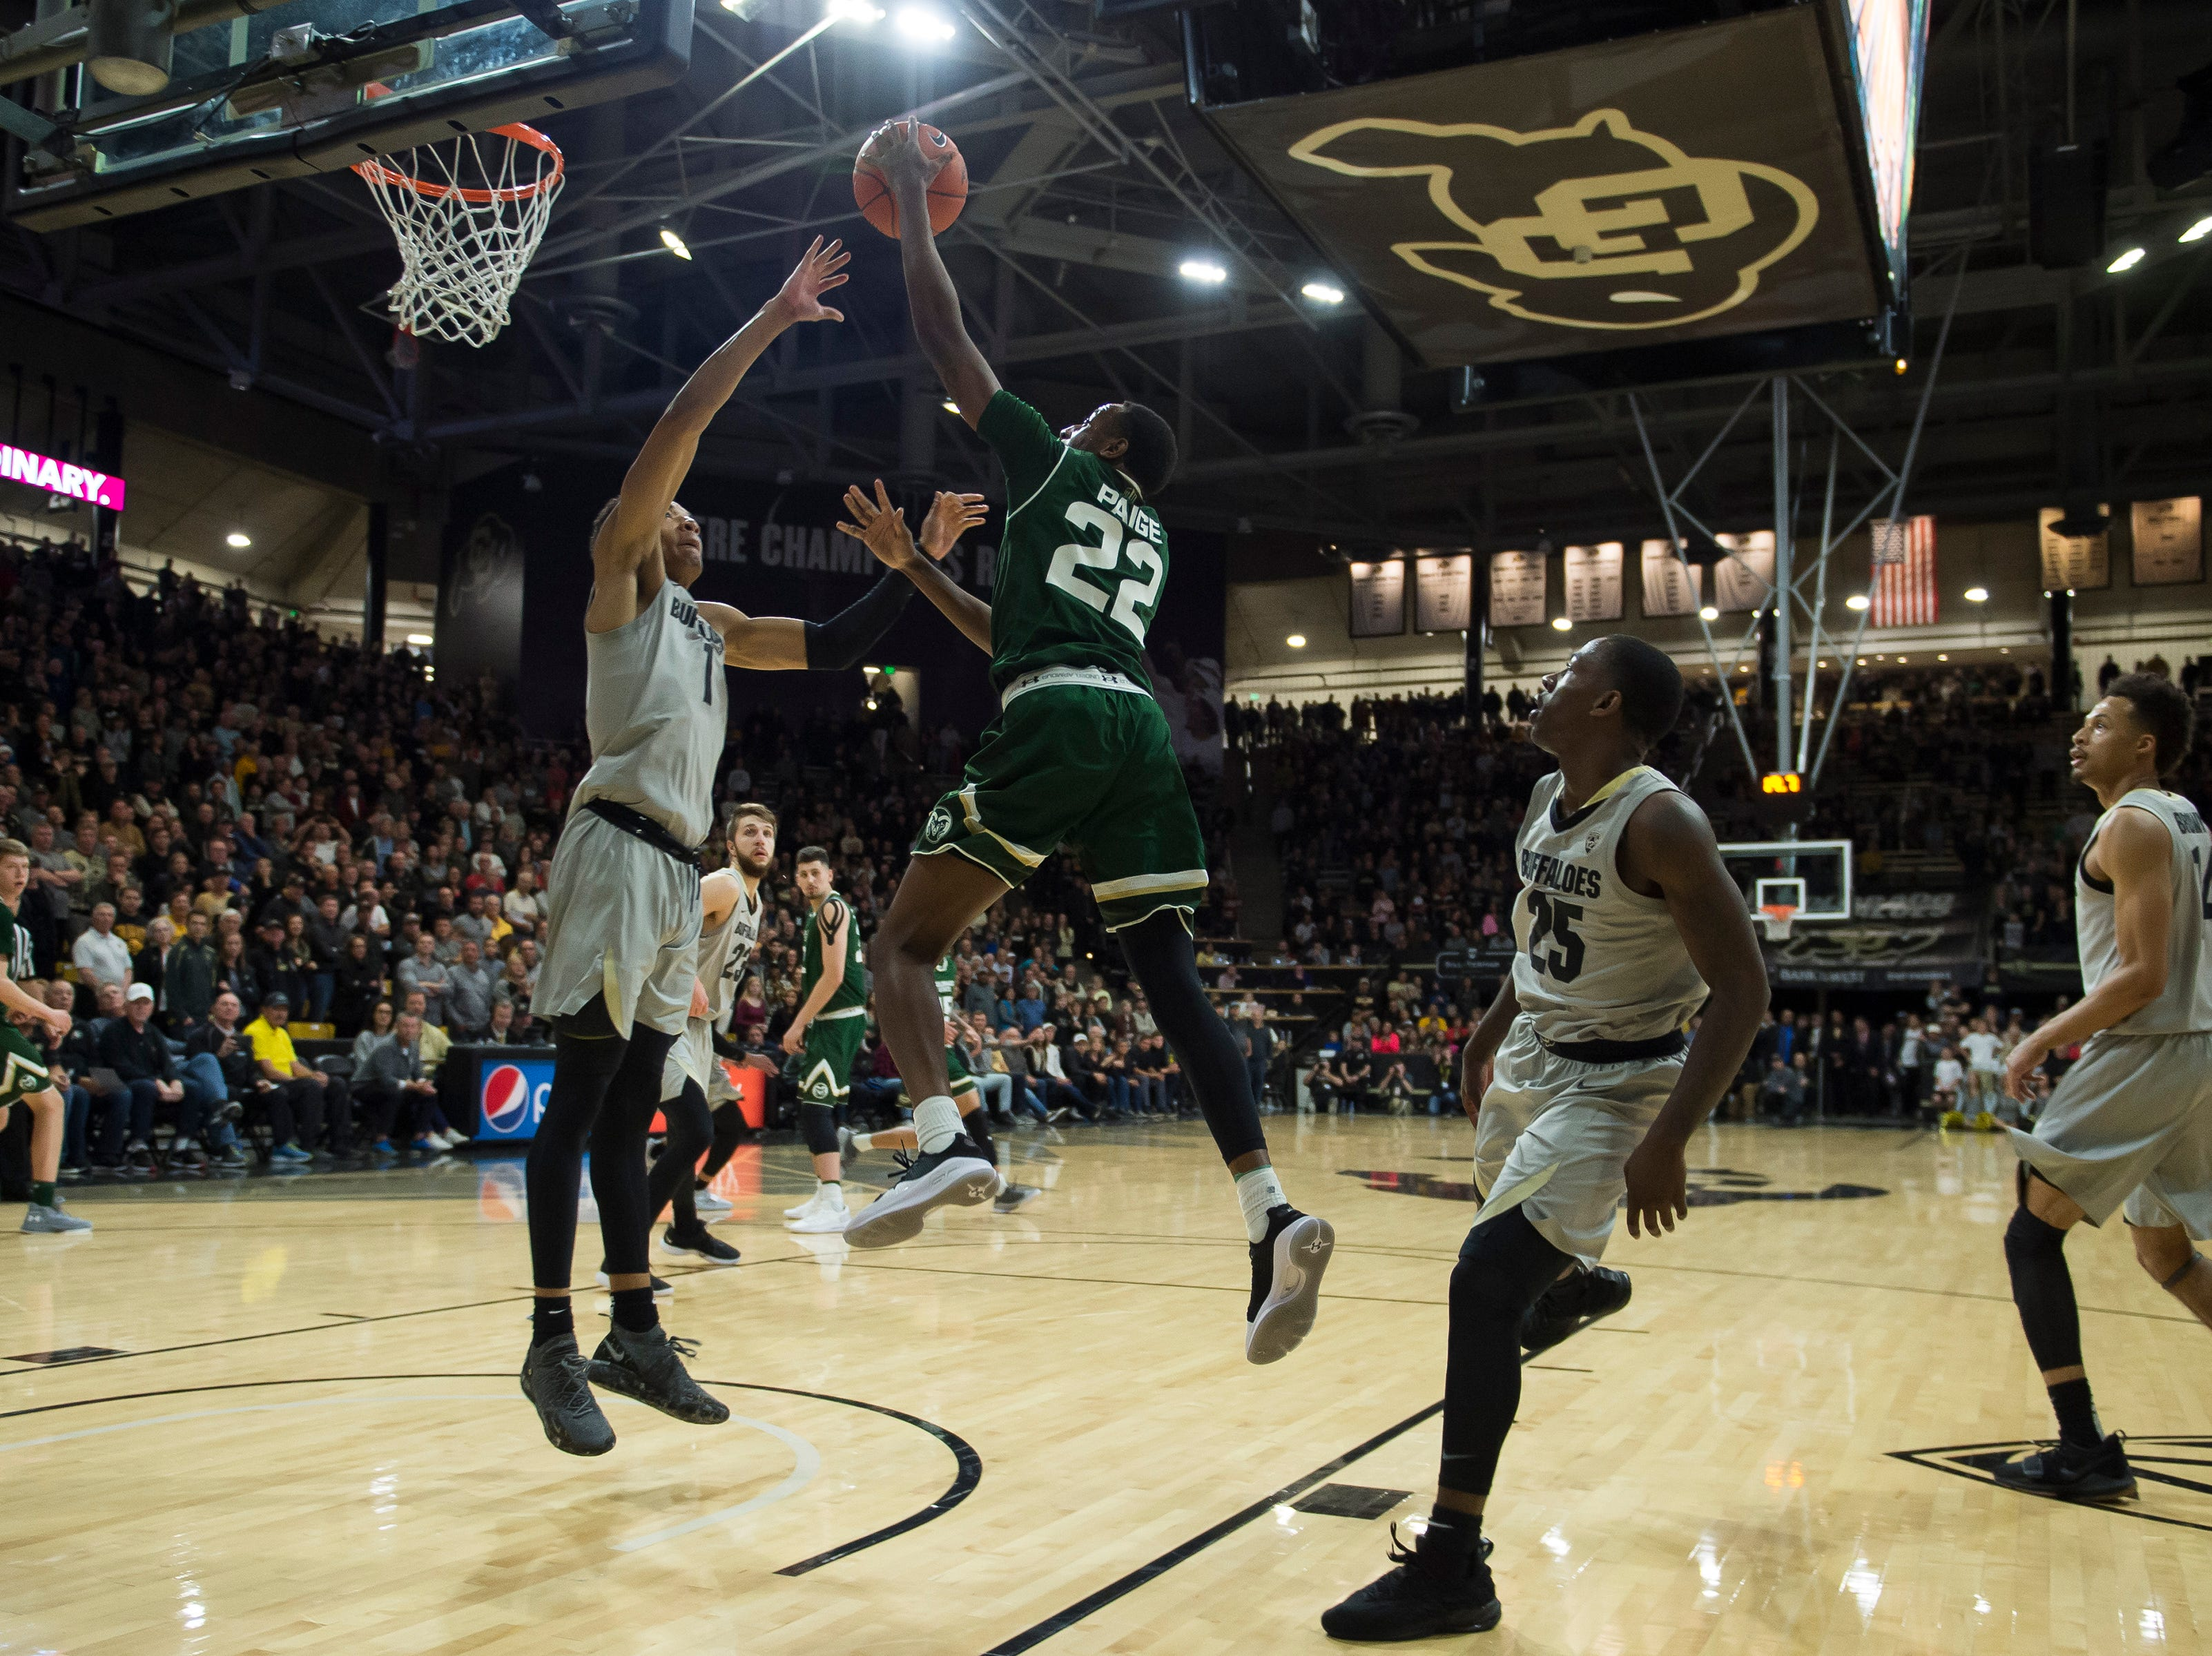 Colorado State University senior guard J.D. Paige (22) has his shot blocked by University of Colorado sophomore guard Tyler Bey (1) late in the game on Saturday, Dec. 1, 2018, at the CU Event Center in Boulder, Colo.